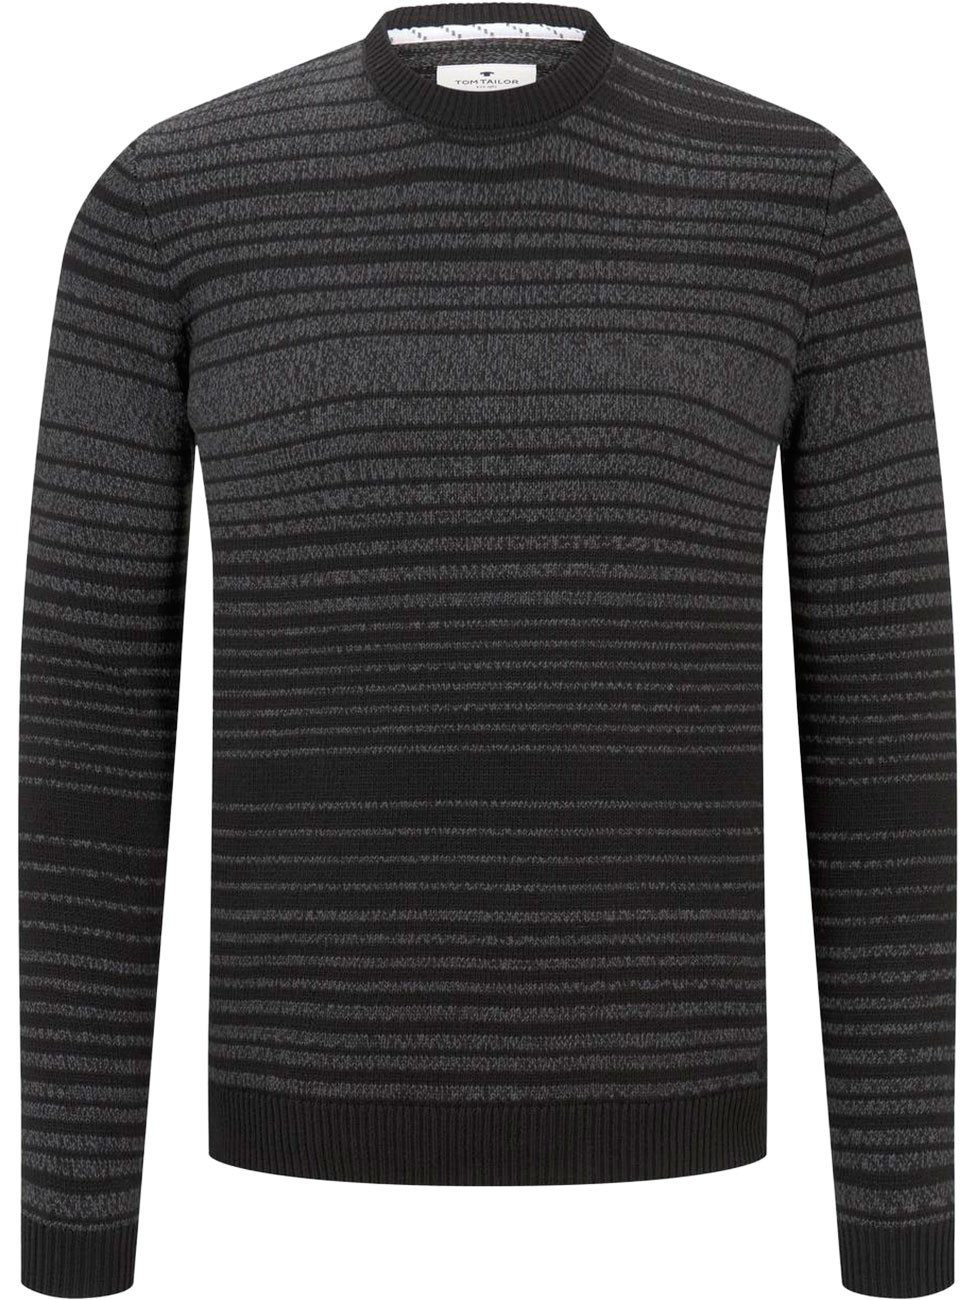 tom-tailor-herren-rundhals-strickpullover-mit-streifen-regular-fit